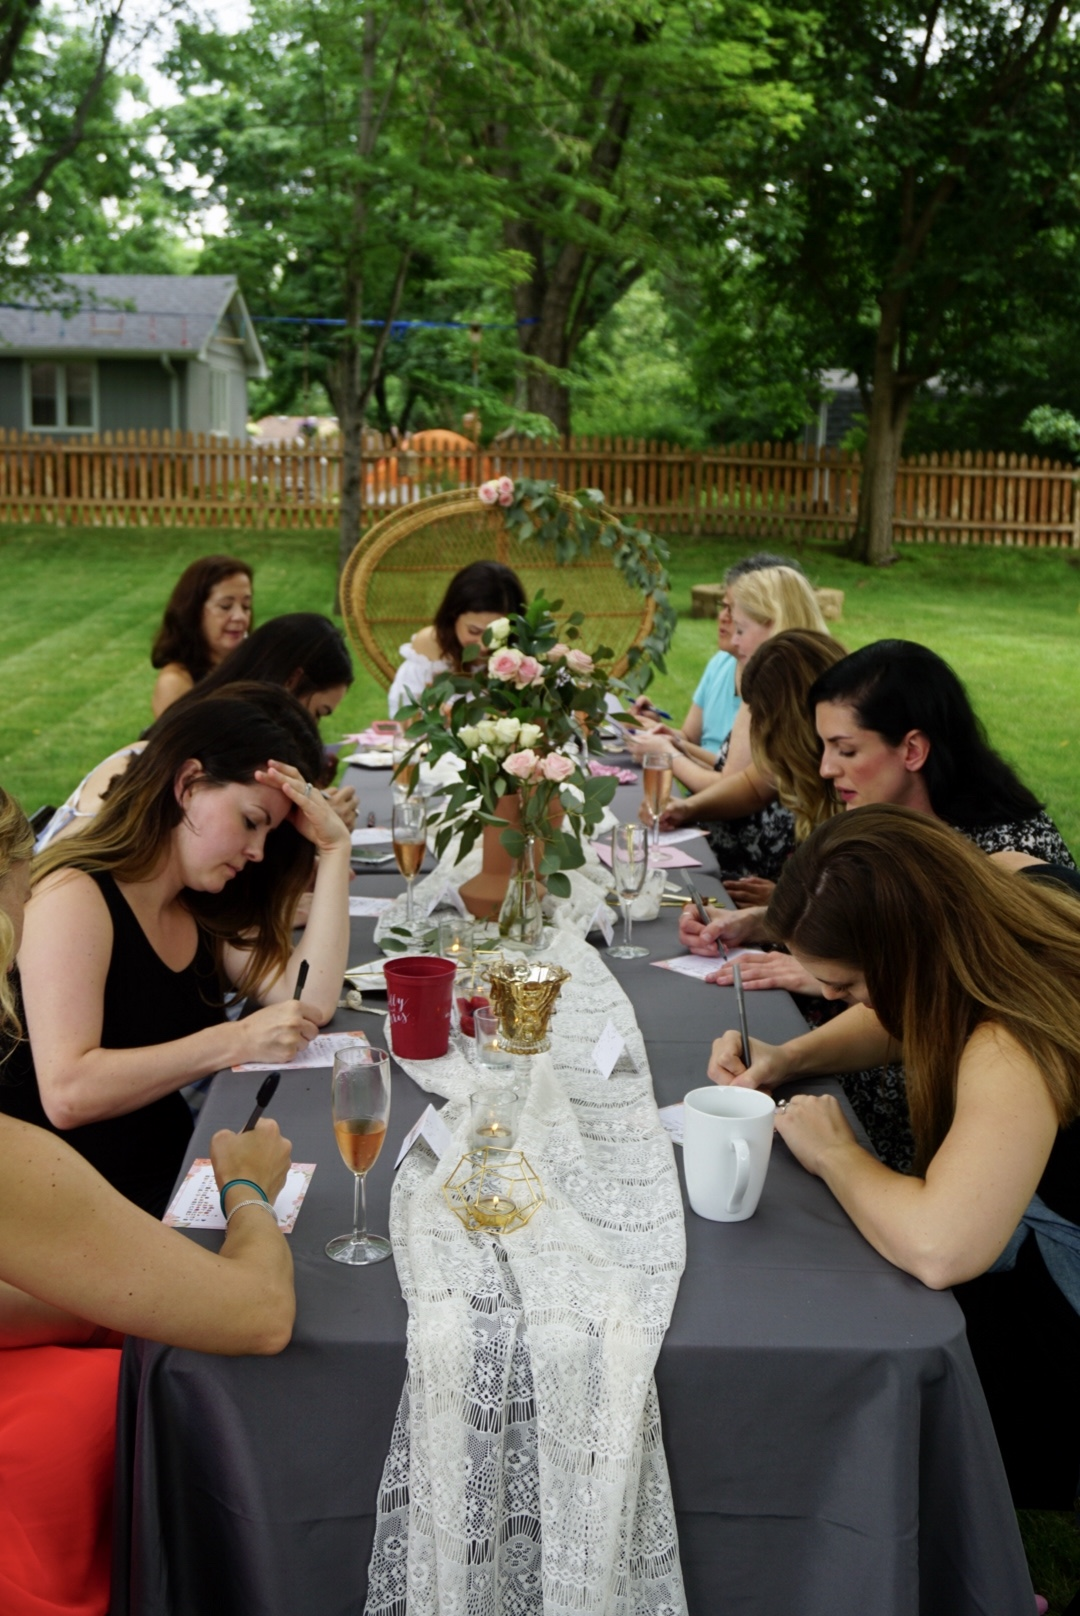 Bridal shower guests playing games